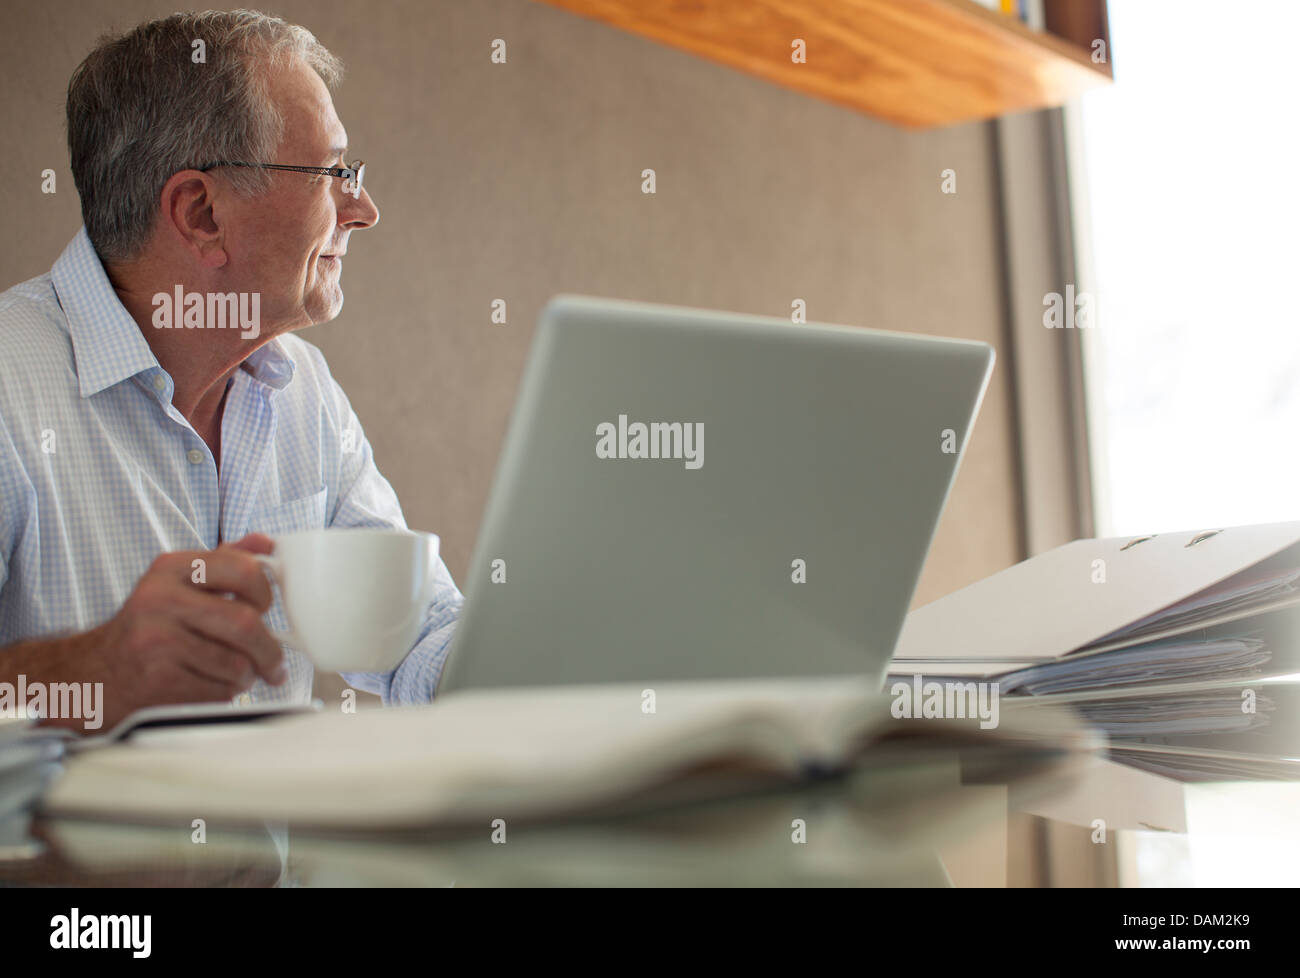 Businessman having cup of coffee at laptop - Stock Image